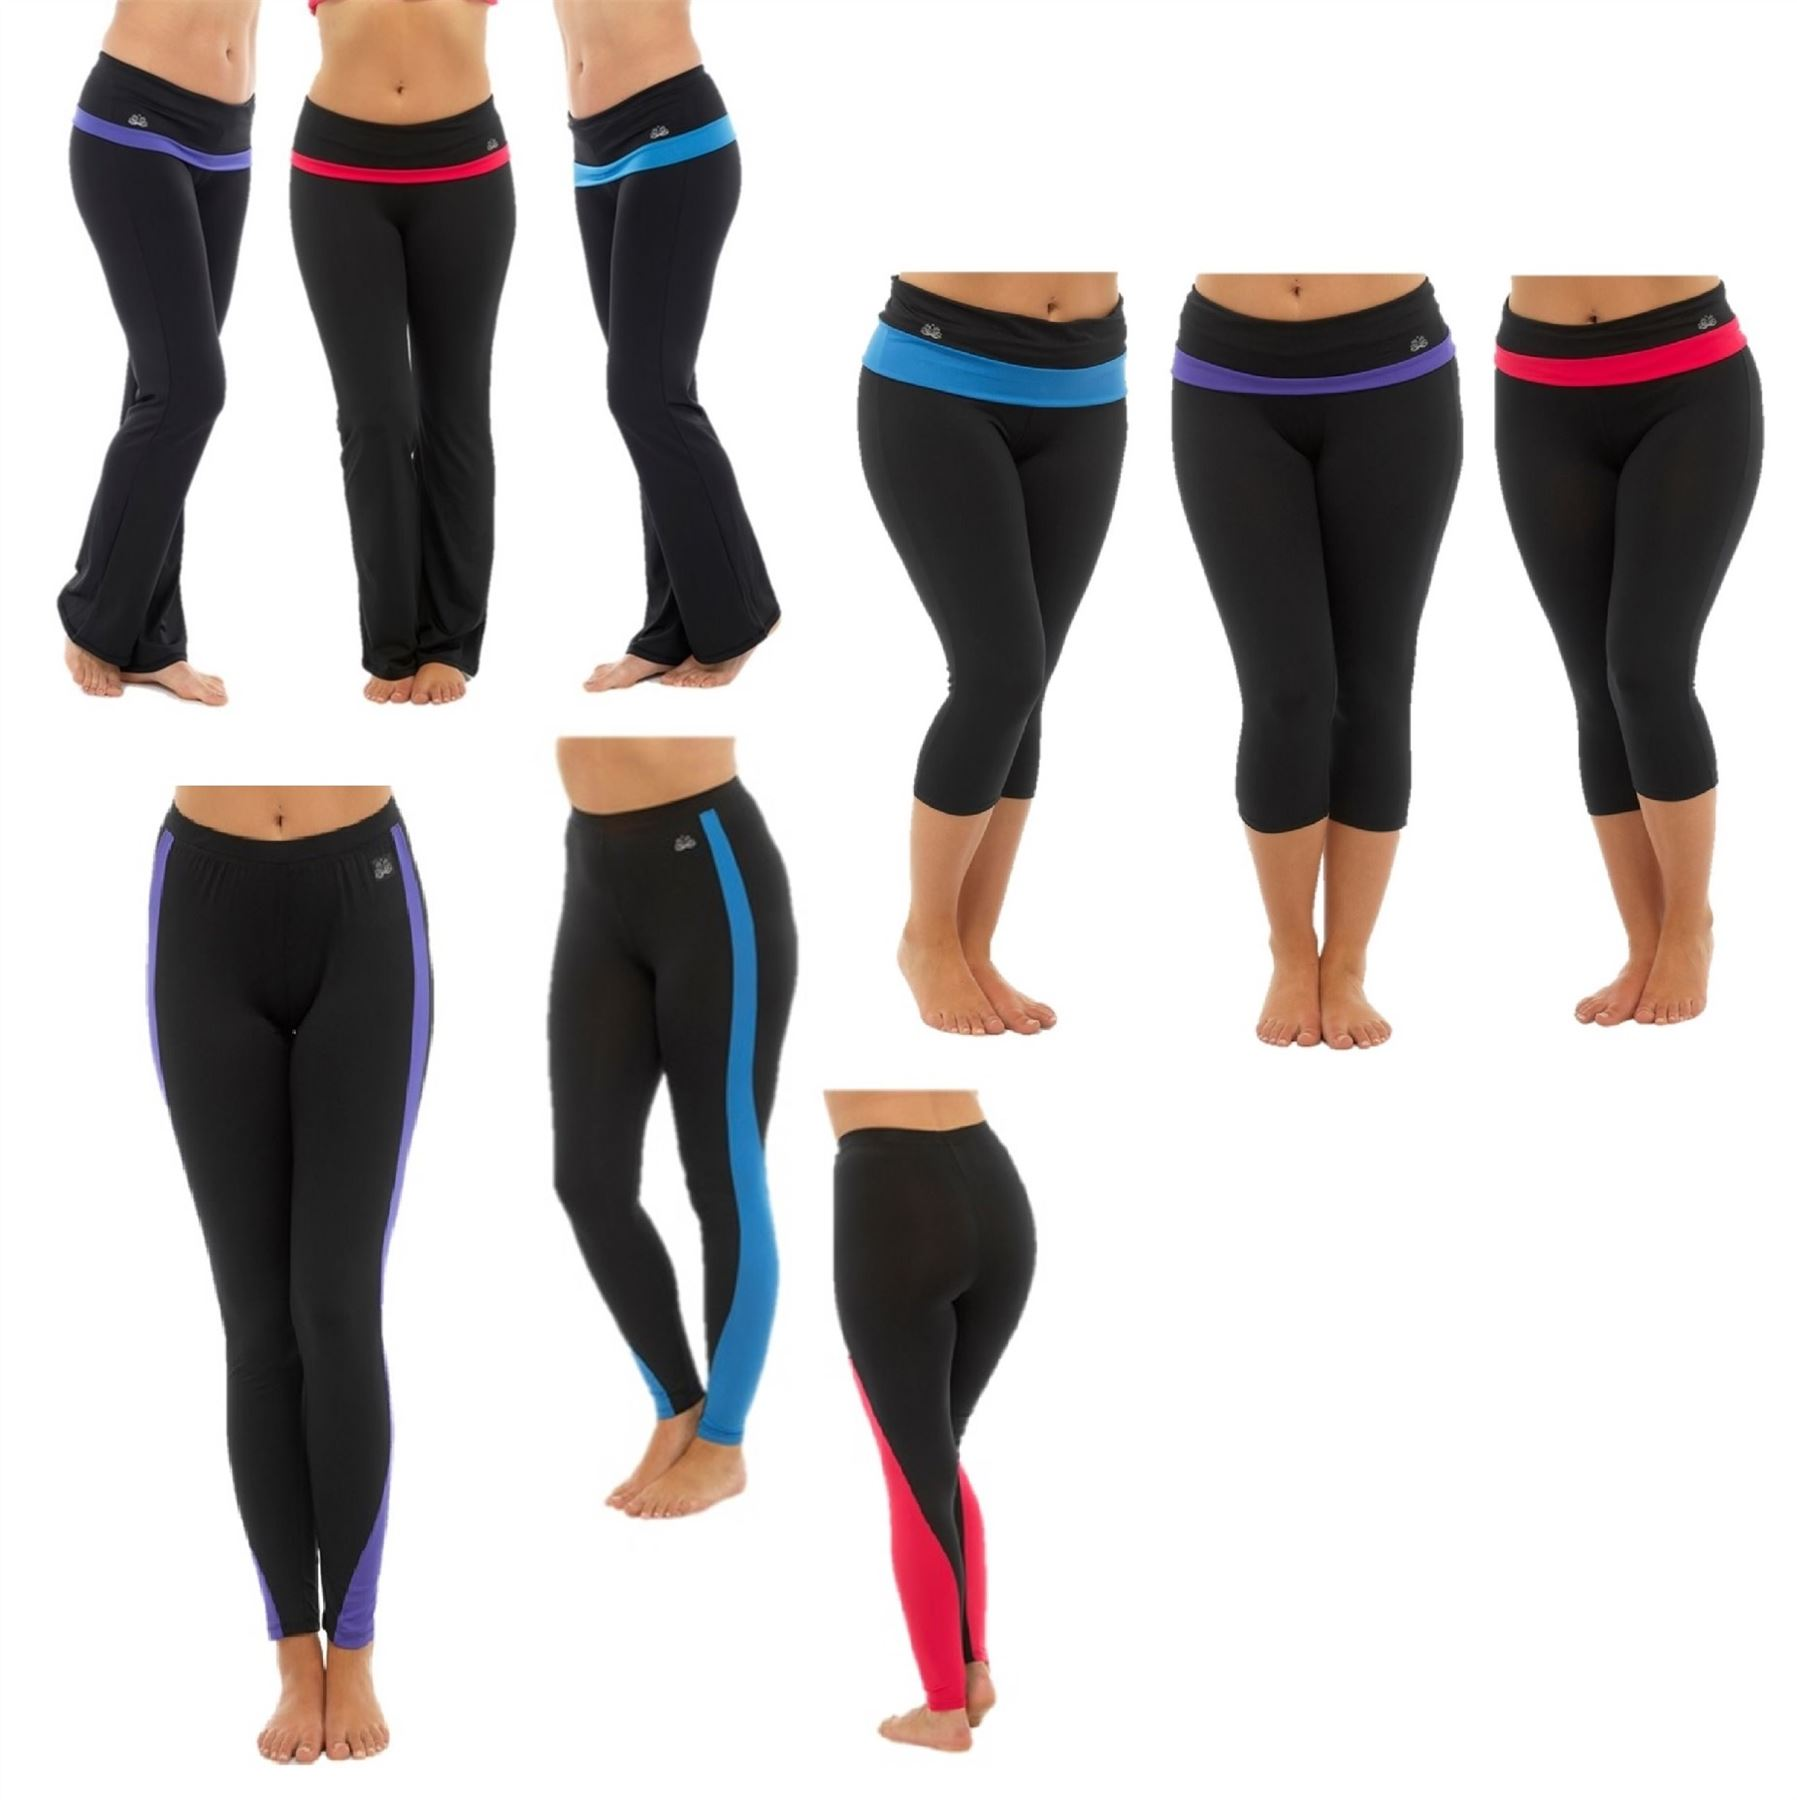 079fa7949e64c Details about Womens Gym Pants Trousers Leggings Running 3/4 Capri Fitness  Exercise Activewear